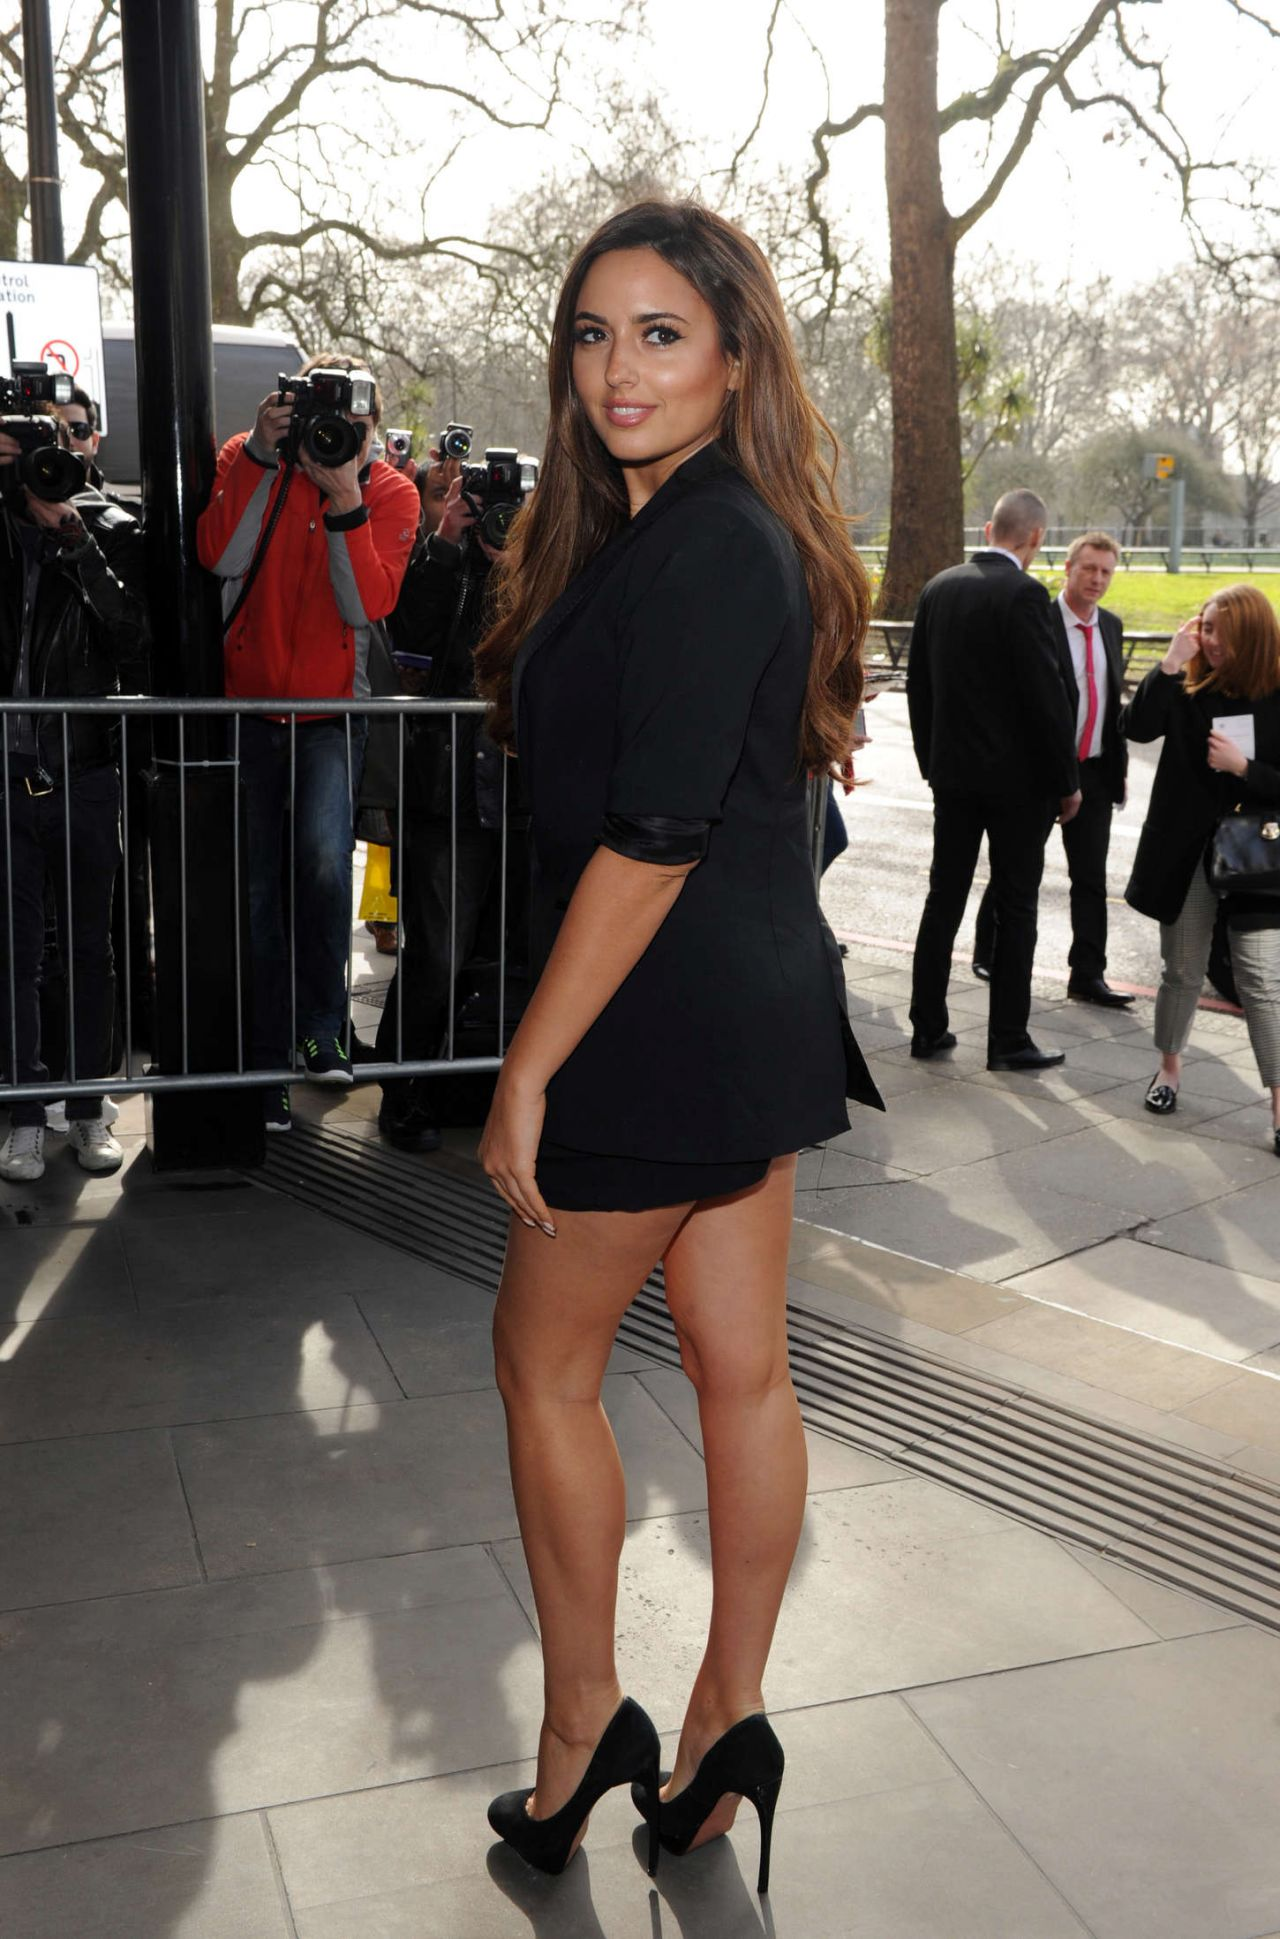 Nadia Forde Tric Awards 2015 In London